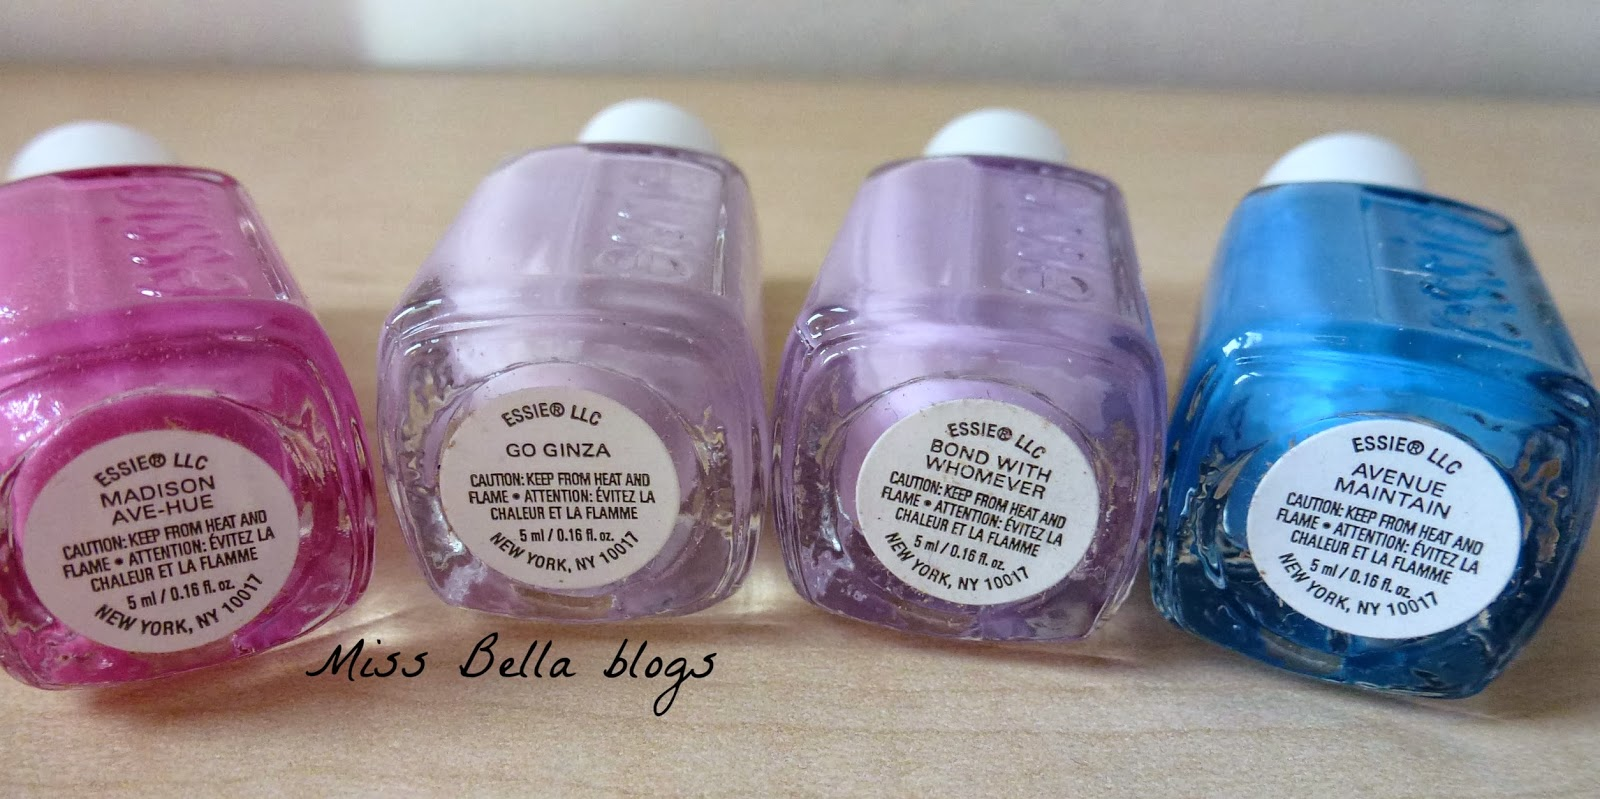 Miss Bella blogs: My Essie Nail Polish Collection